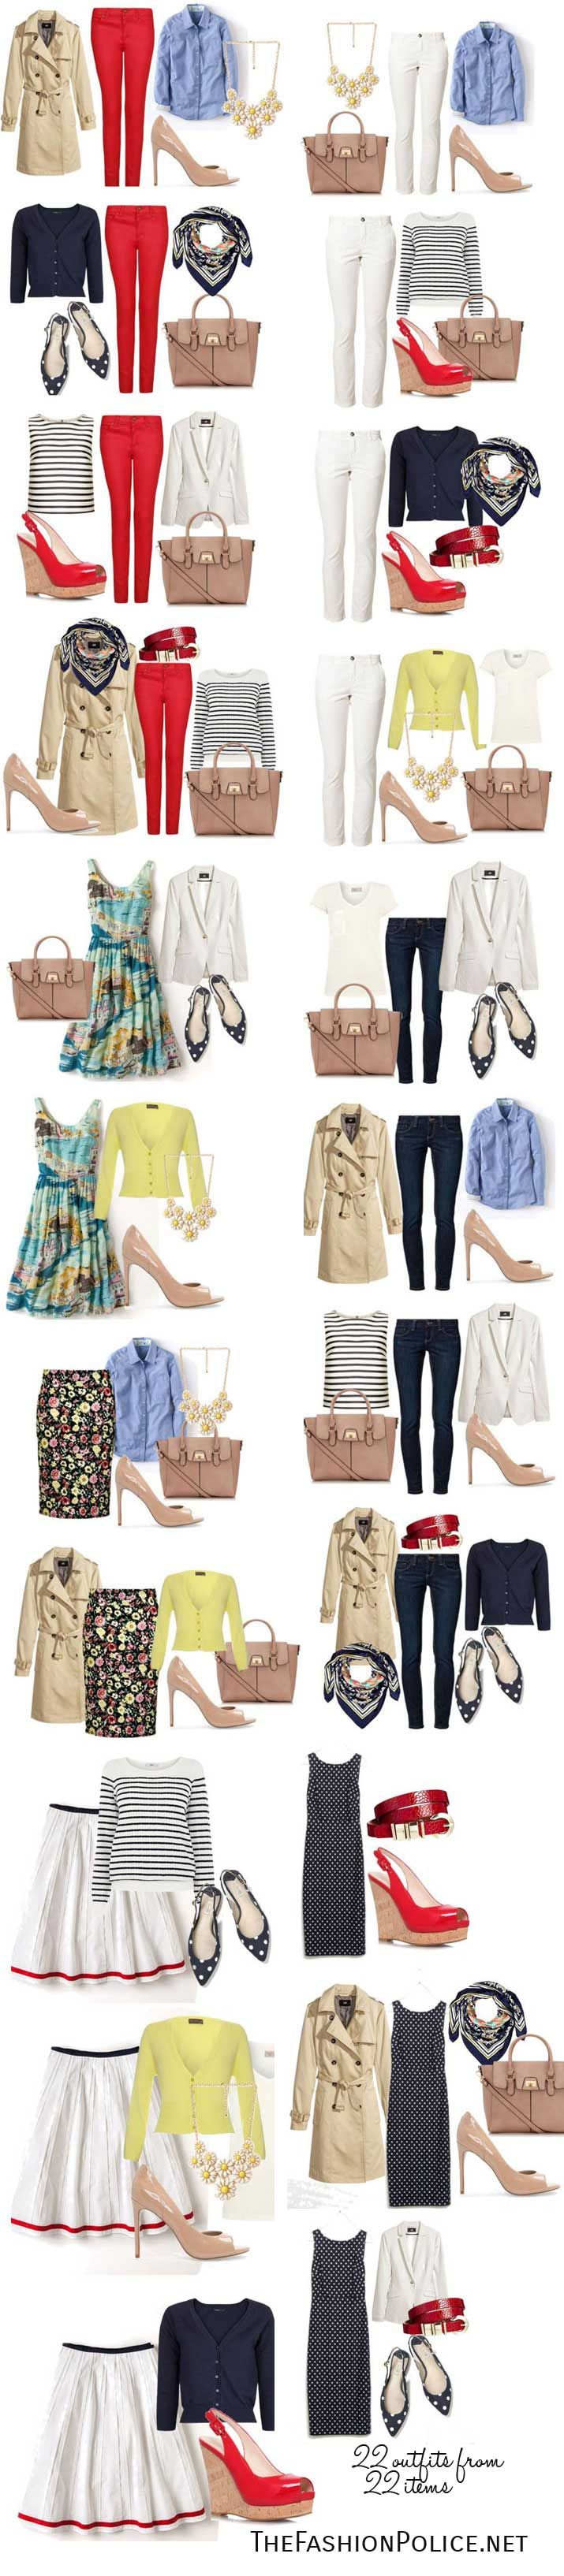 Spring Capsule Wardrobe 2014: Build a capsule wardrobe for spring 2014> The Fashion Police